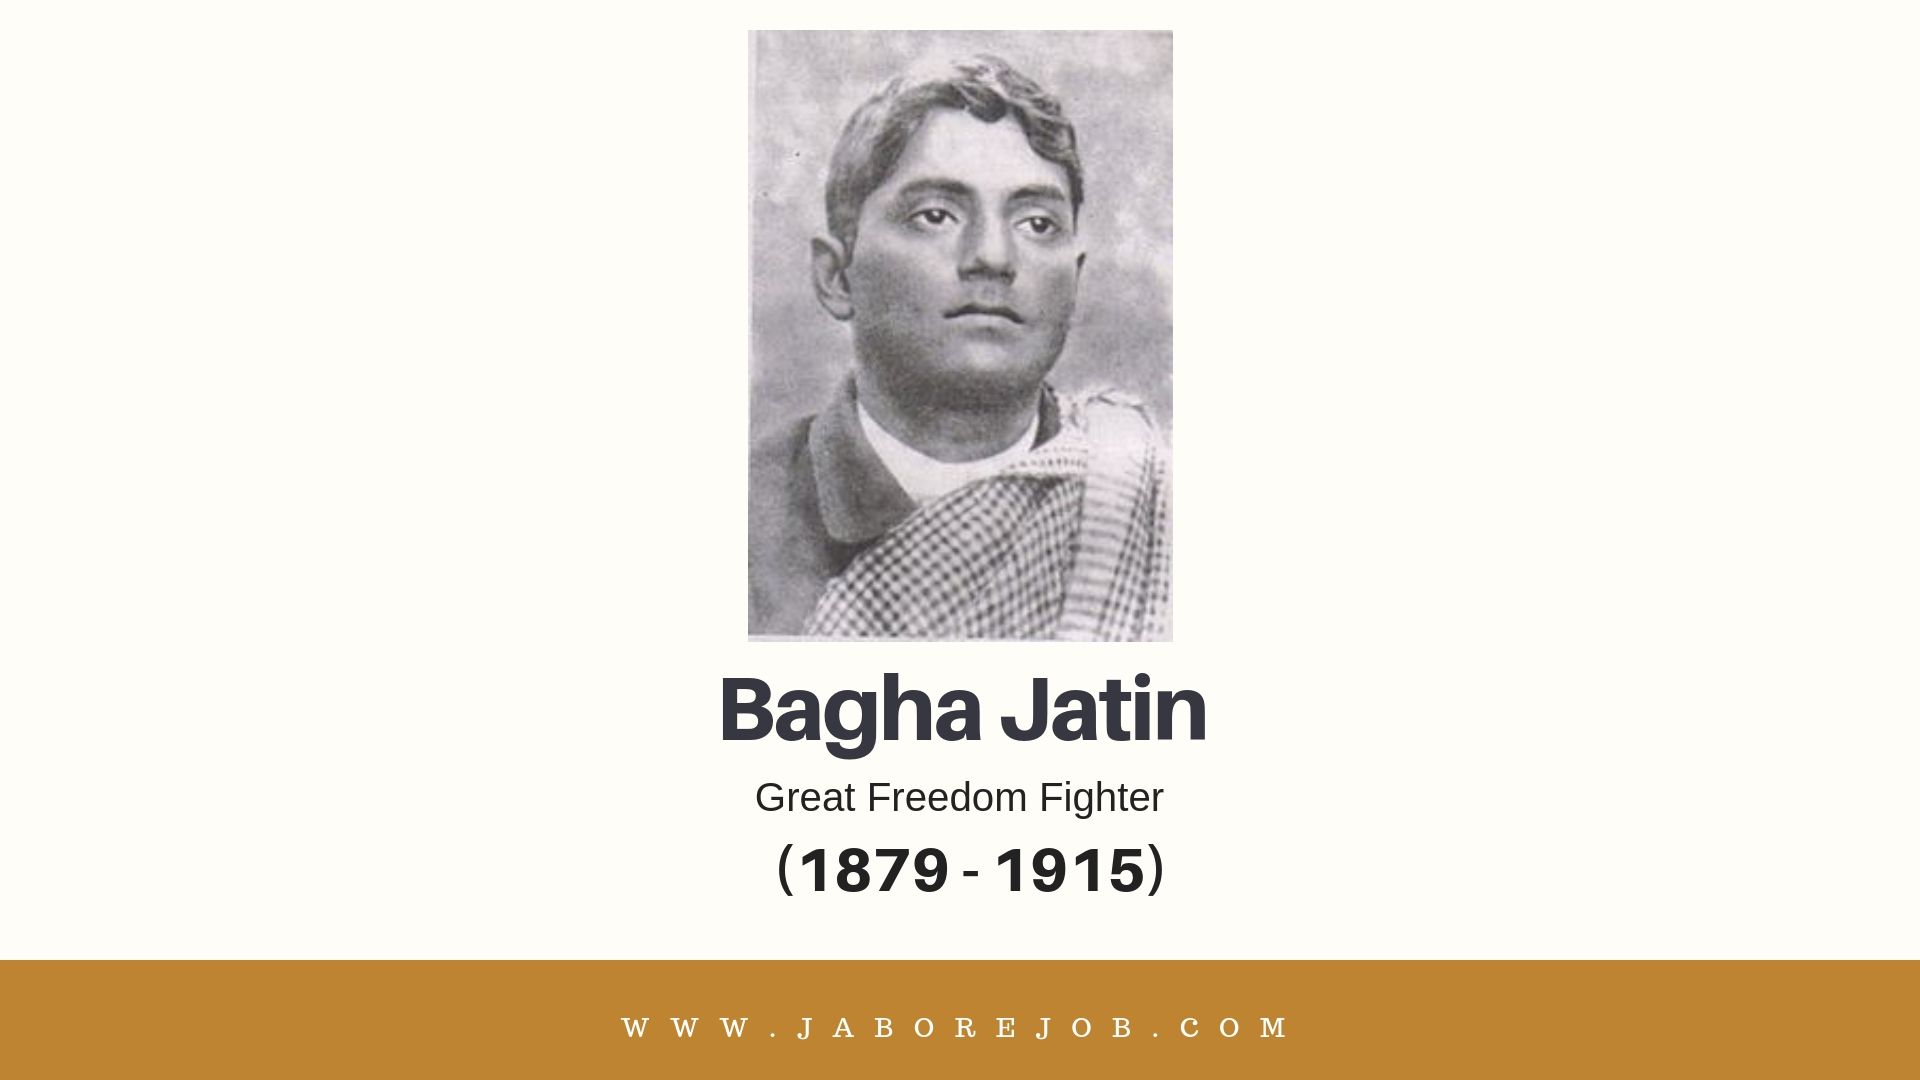 Bagha Jatin, Bagha Jatin Biography, Bagha Jatin History, Bagha Jatin role in national movement, Bagha Jatin achivements, baghajatin kolkata